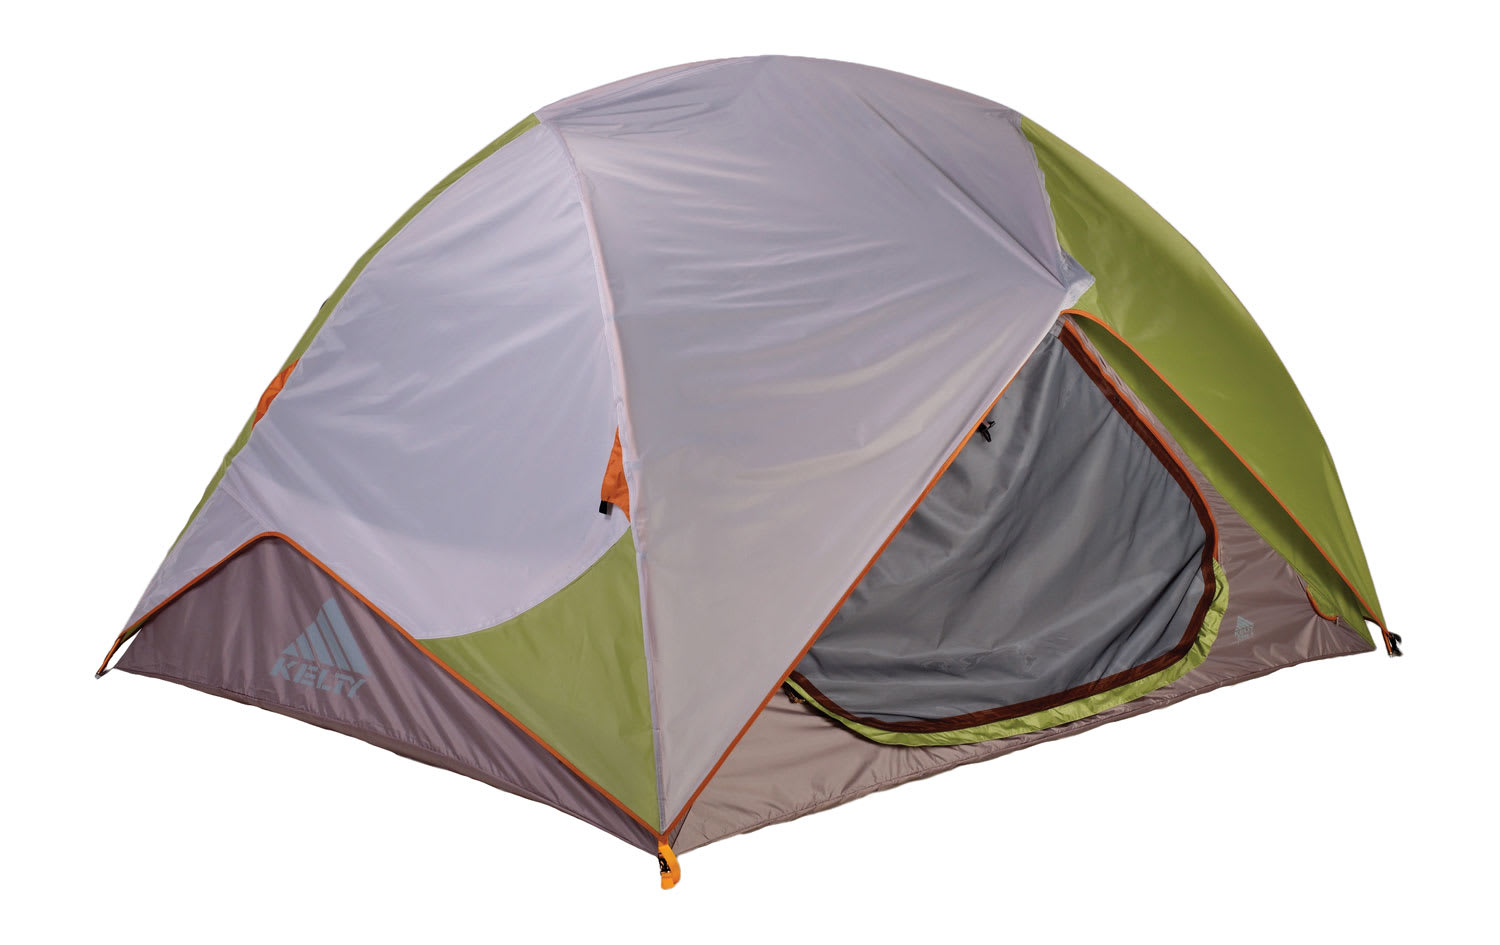 Kelty Eden 4 Person Tent - thumbnail 2  sc 1 st  The House & On Sale Kelty Eden 4 Person Tent up to 75% off